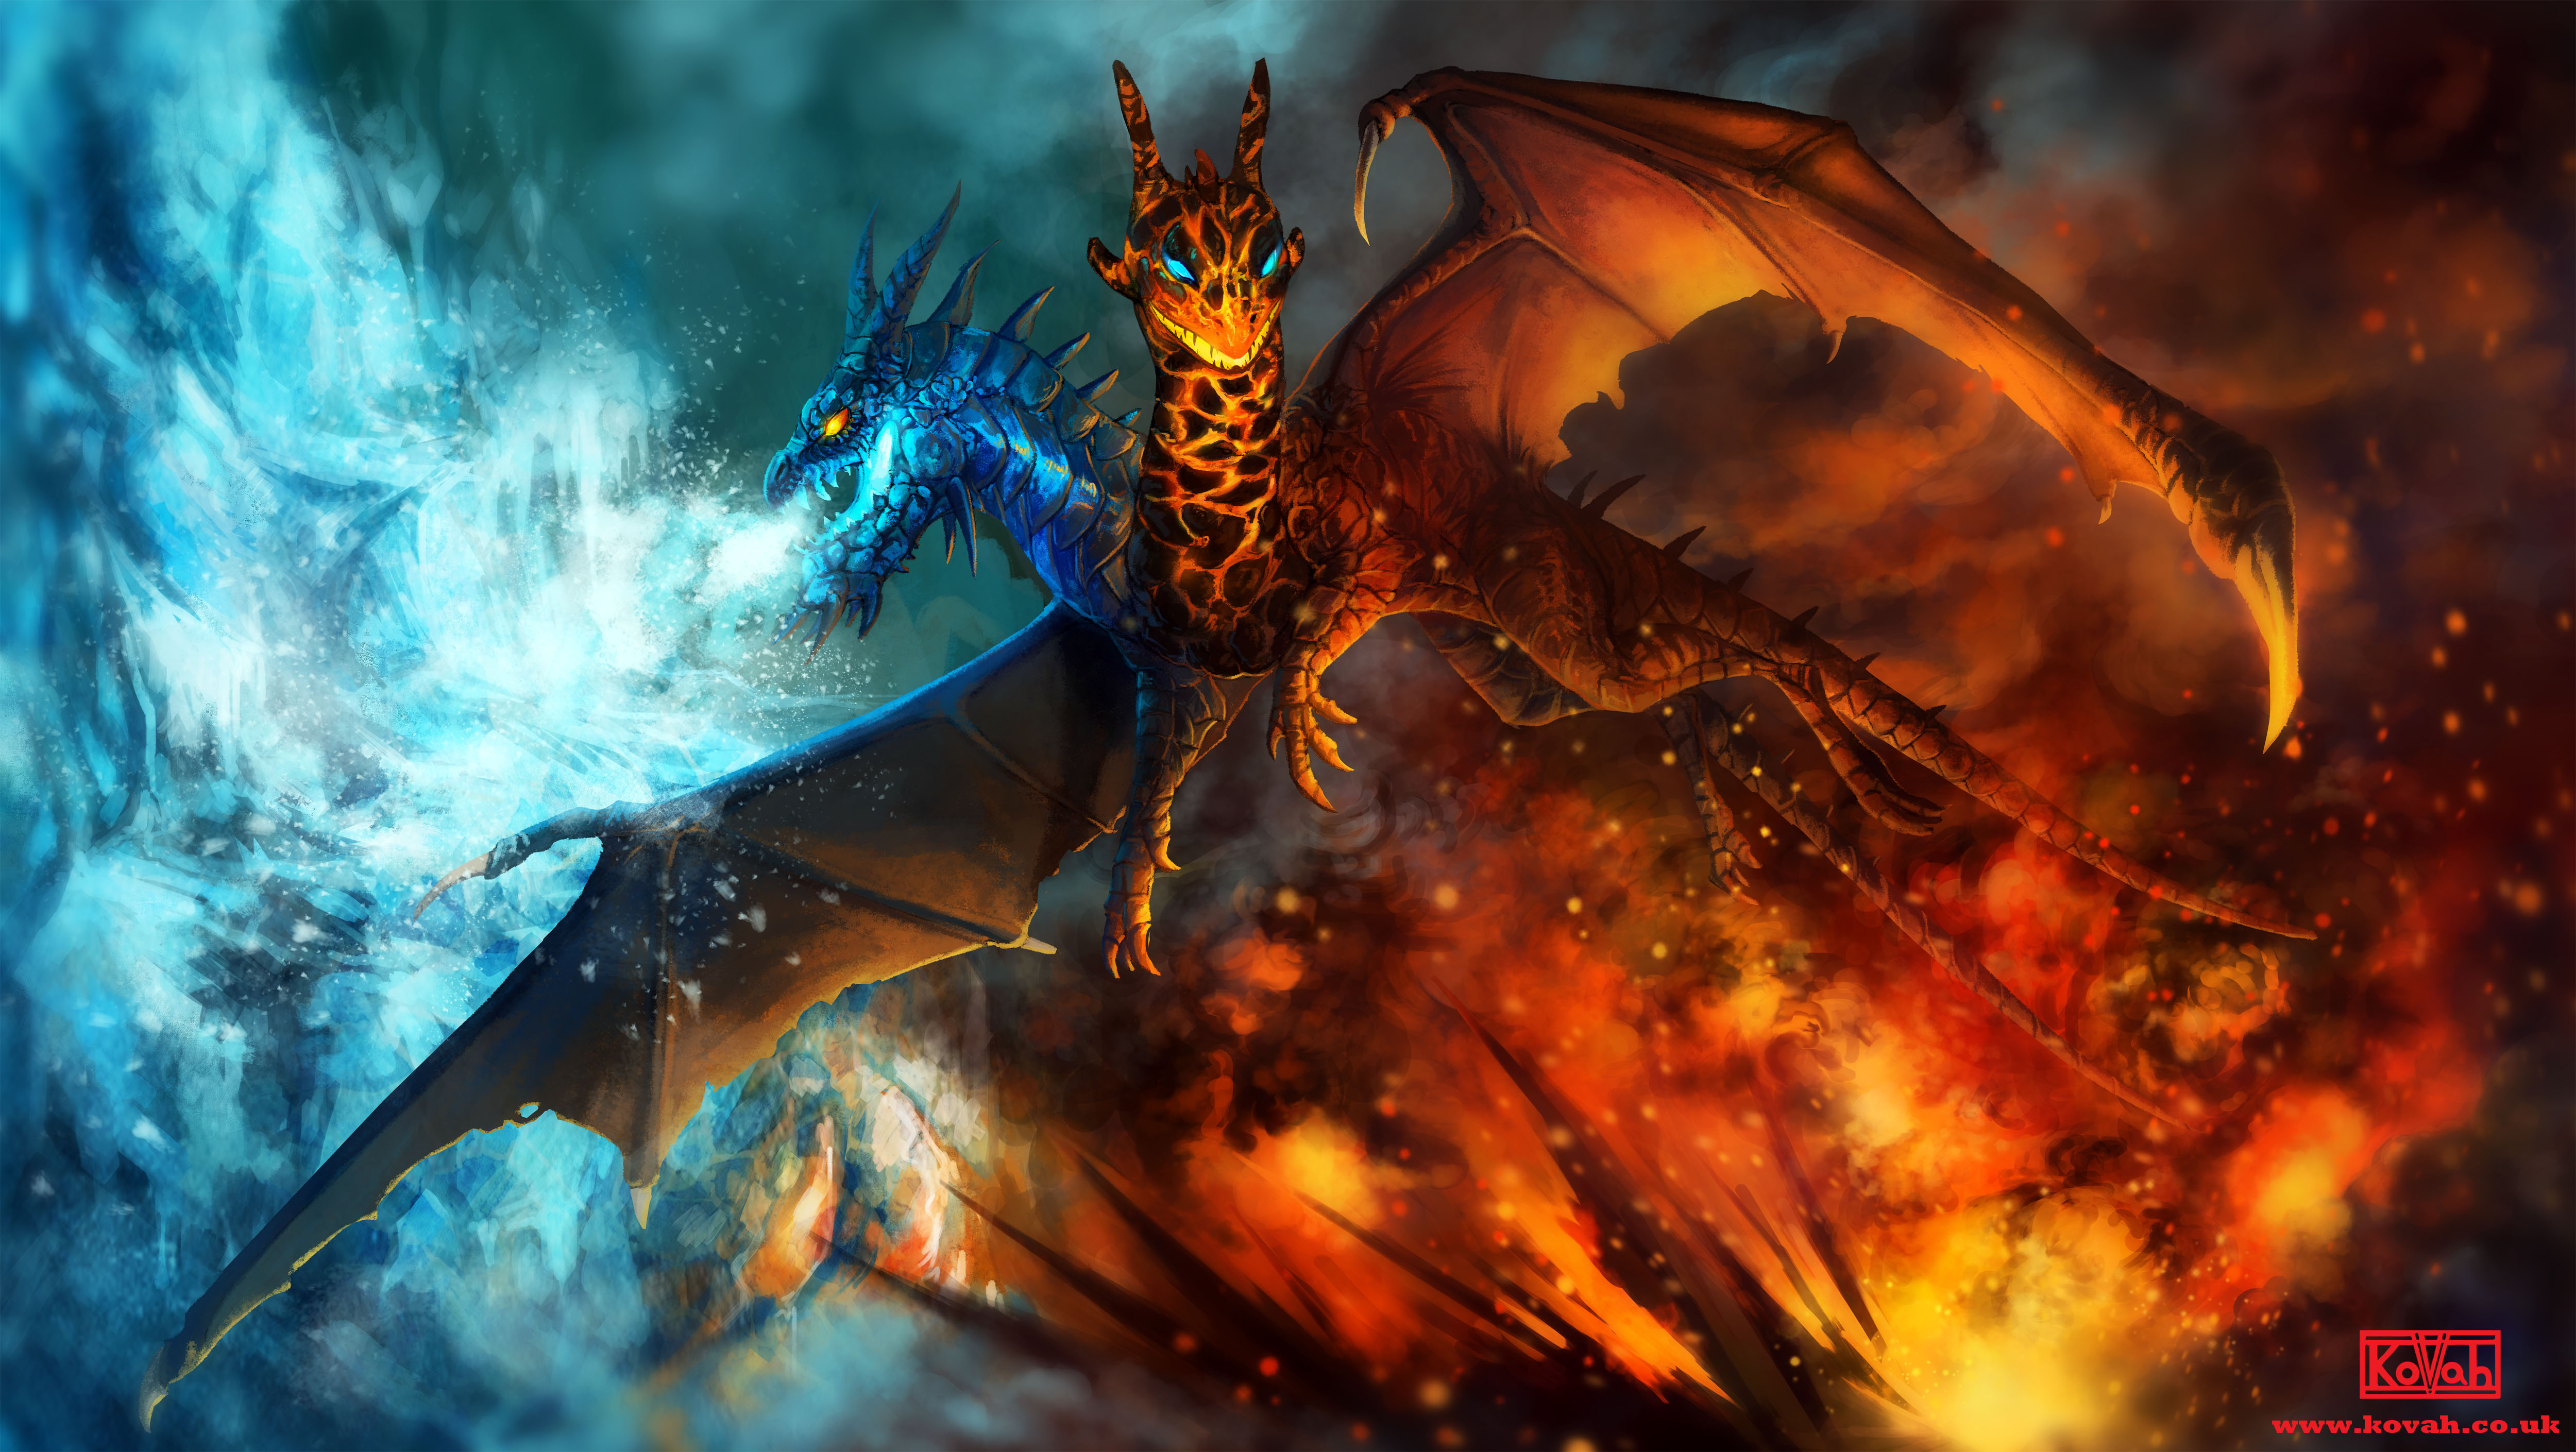 Jakiro The song of Fire and Ice Wallpaper Dota 2 HD Wallpapers 5000x2819